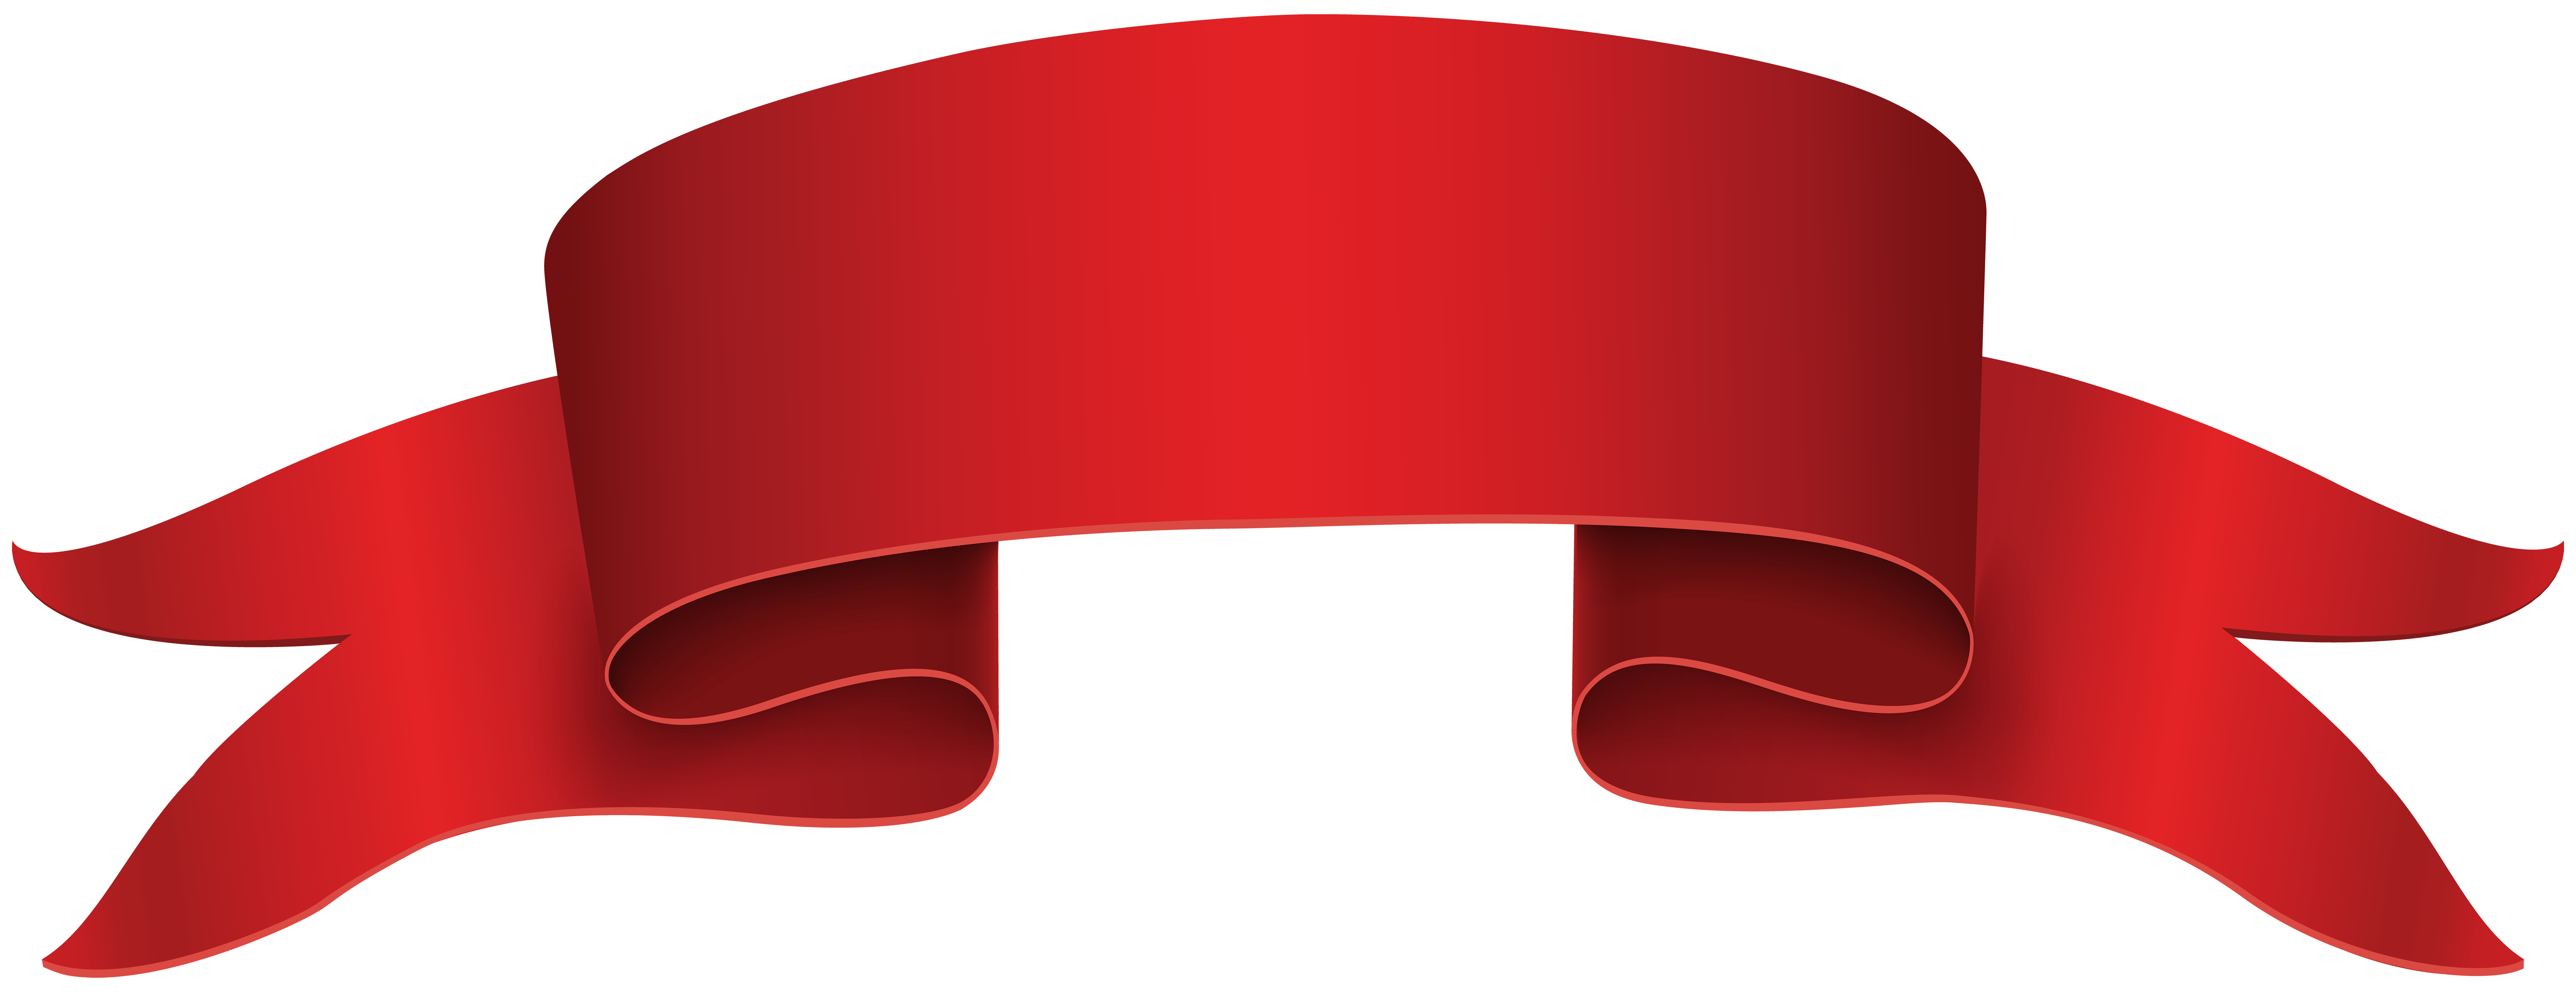 Red banner png clip. Furniture clipart architecture